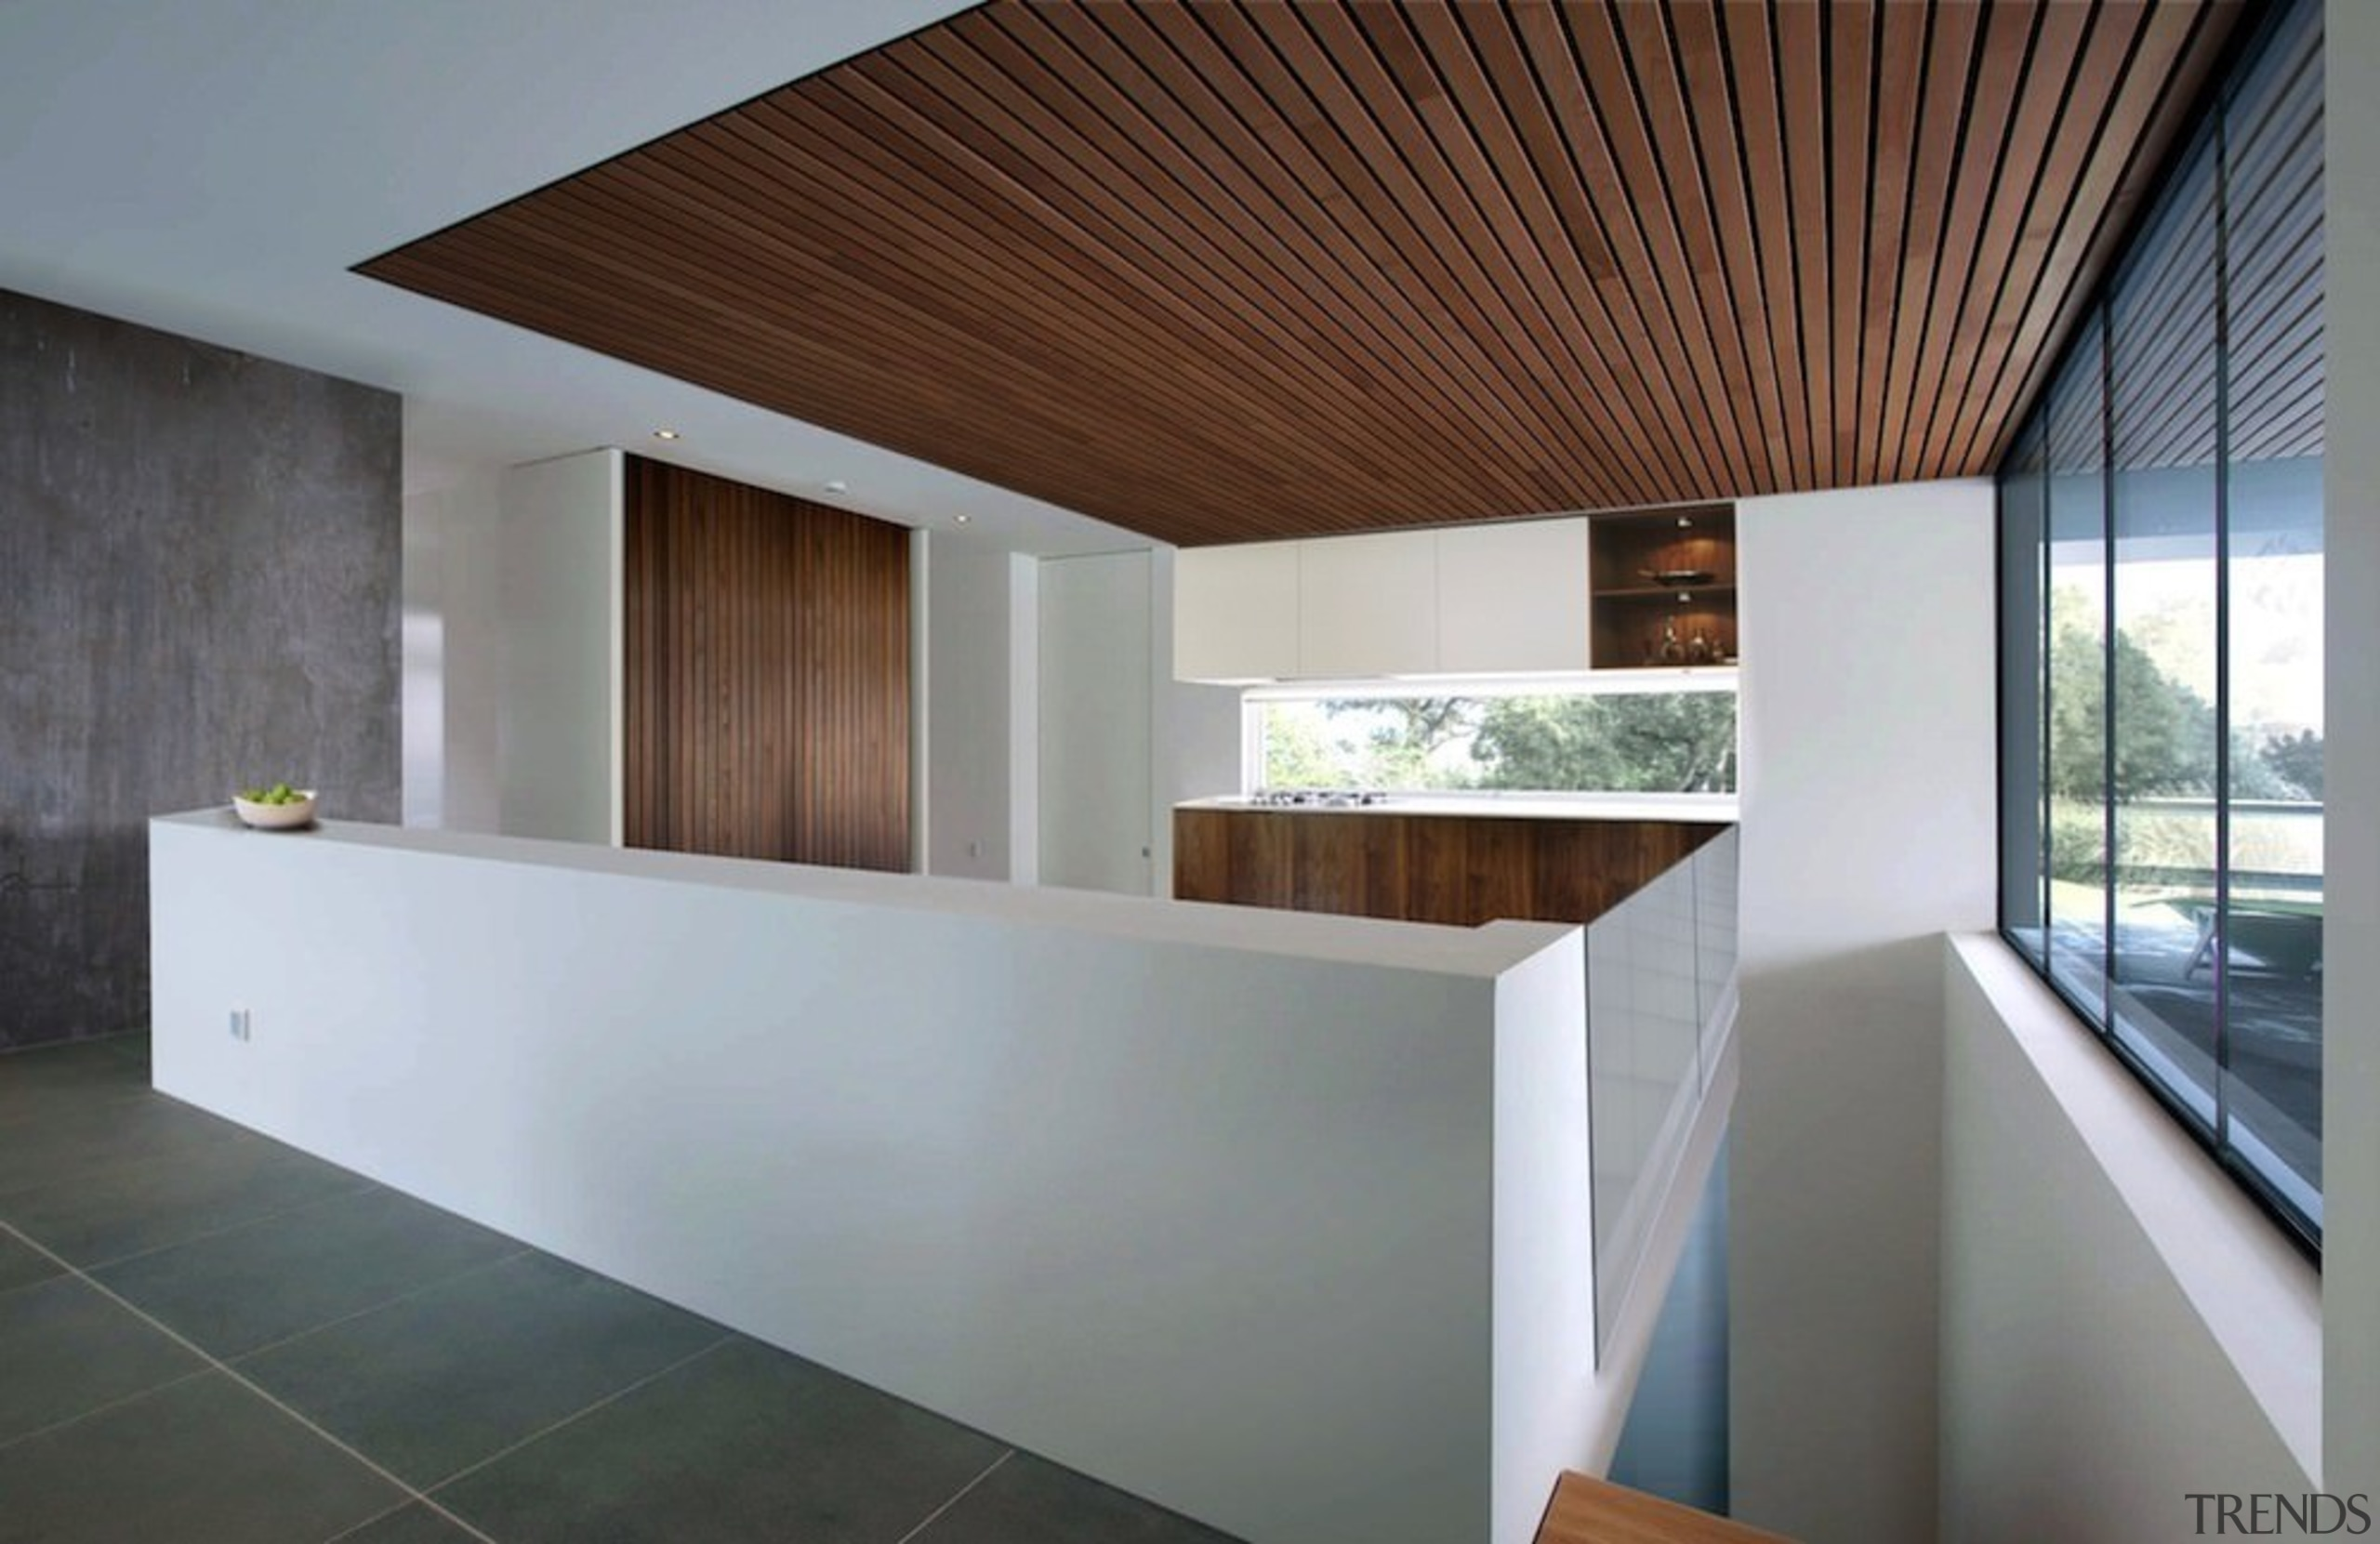 Wood runs along the ceiling - Wood runs architecture, ceiling, daylighting, estate, home, house, interior design, property, real estate, gray